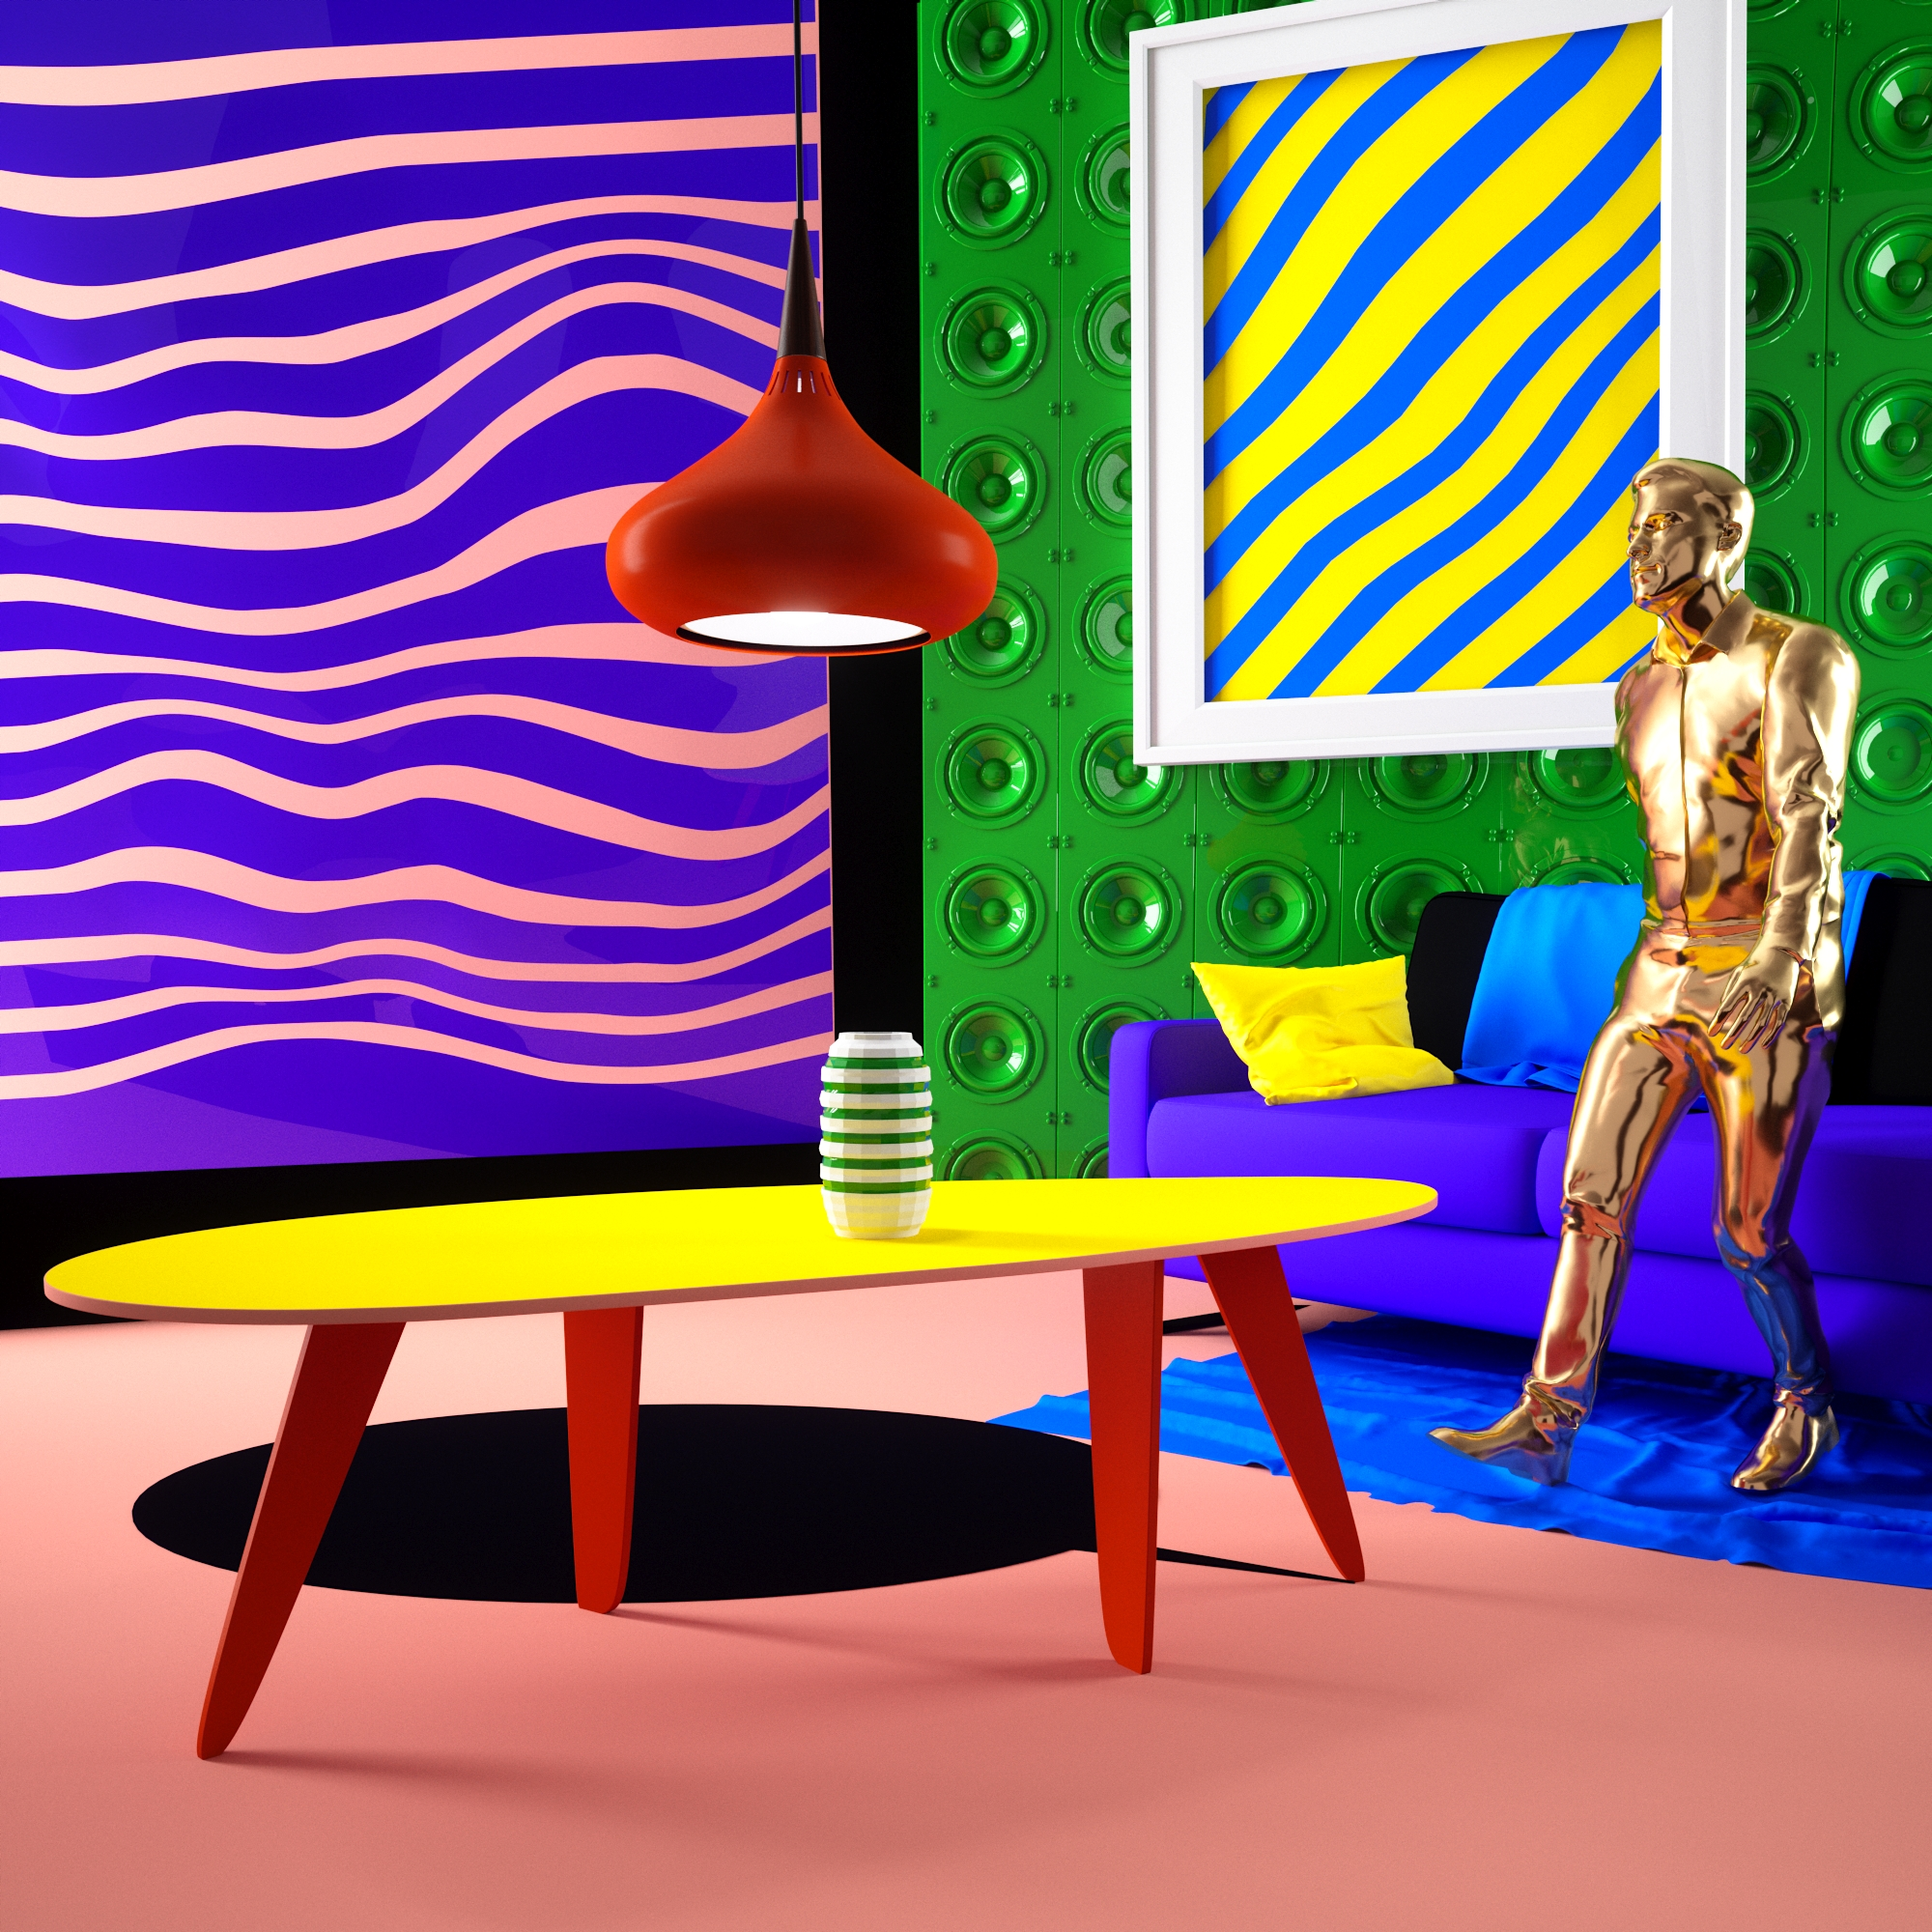 Surreal and Colourful Artwork by OUUM Studio